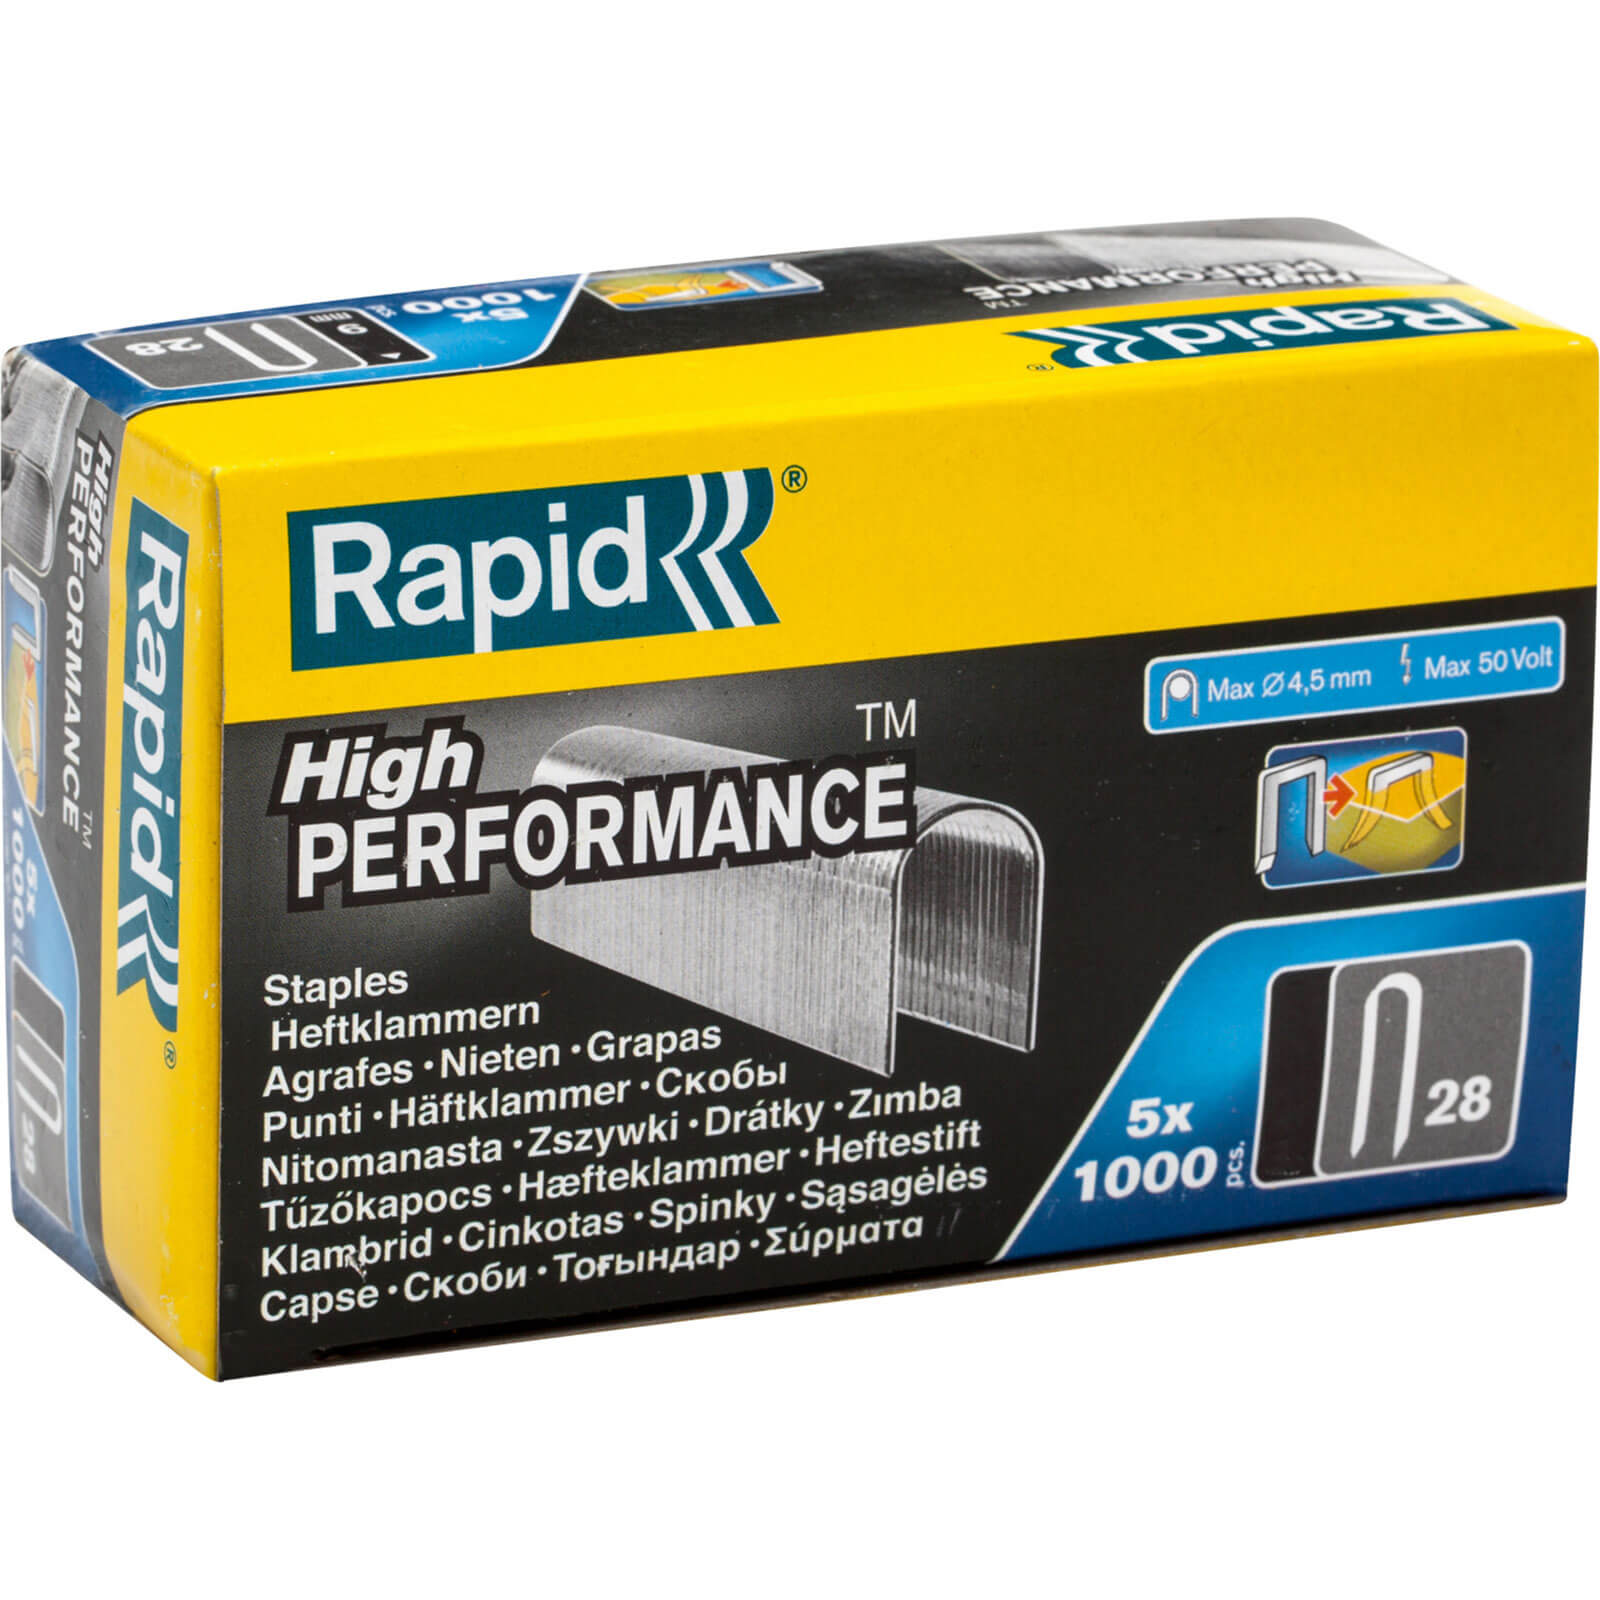 Image of Rapid 28 Galvanised Staples 10mm Pack of 5000